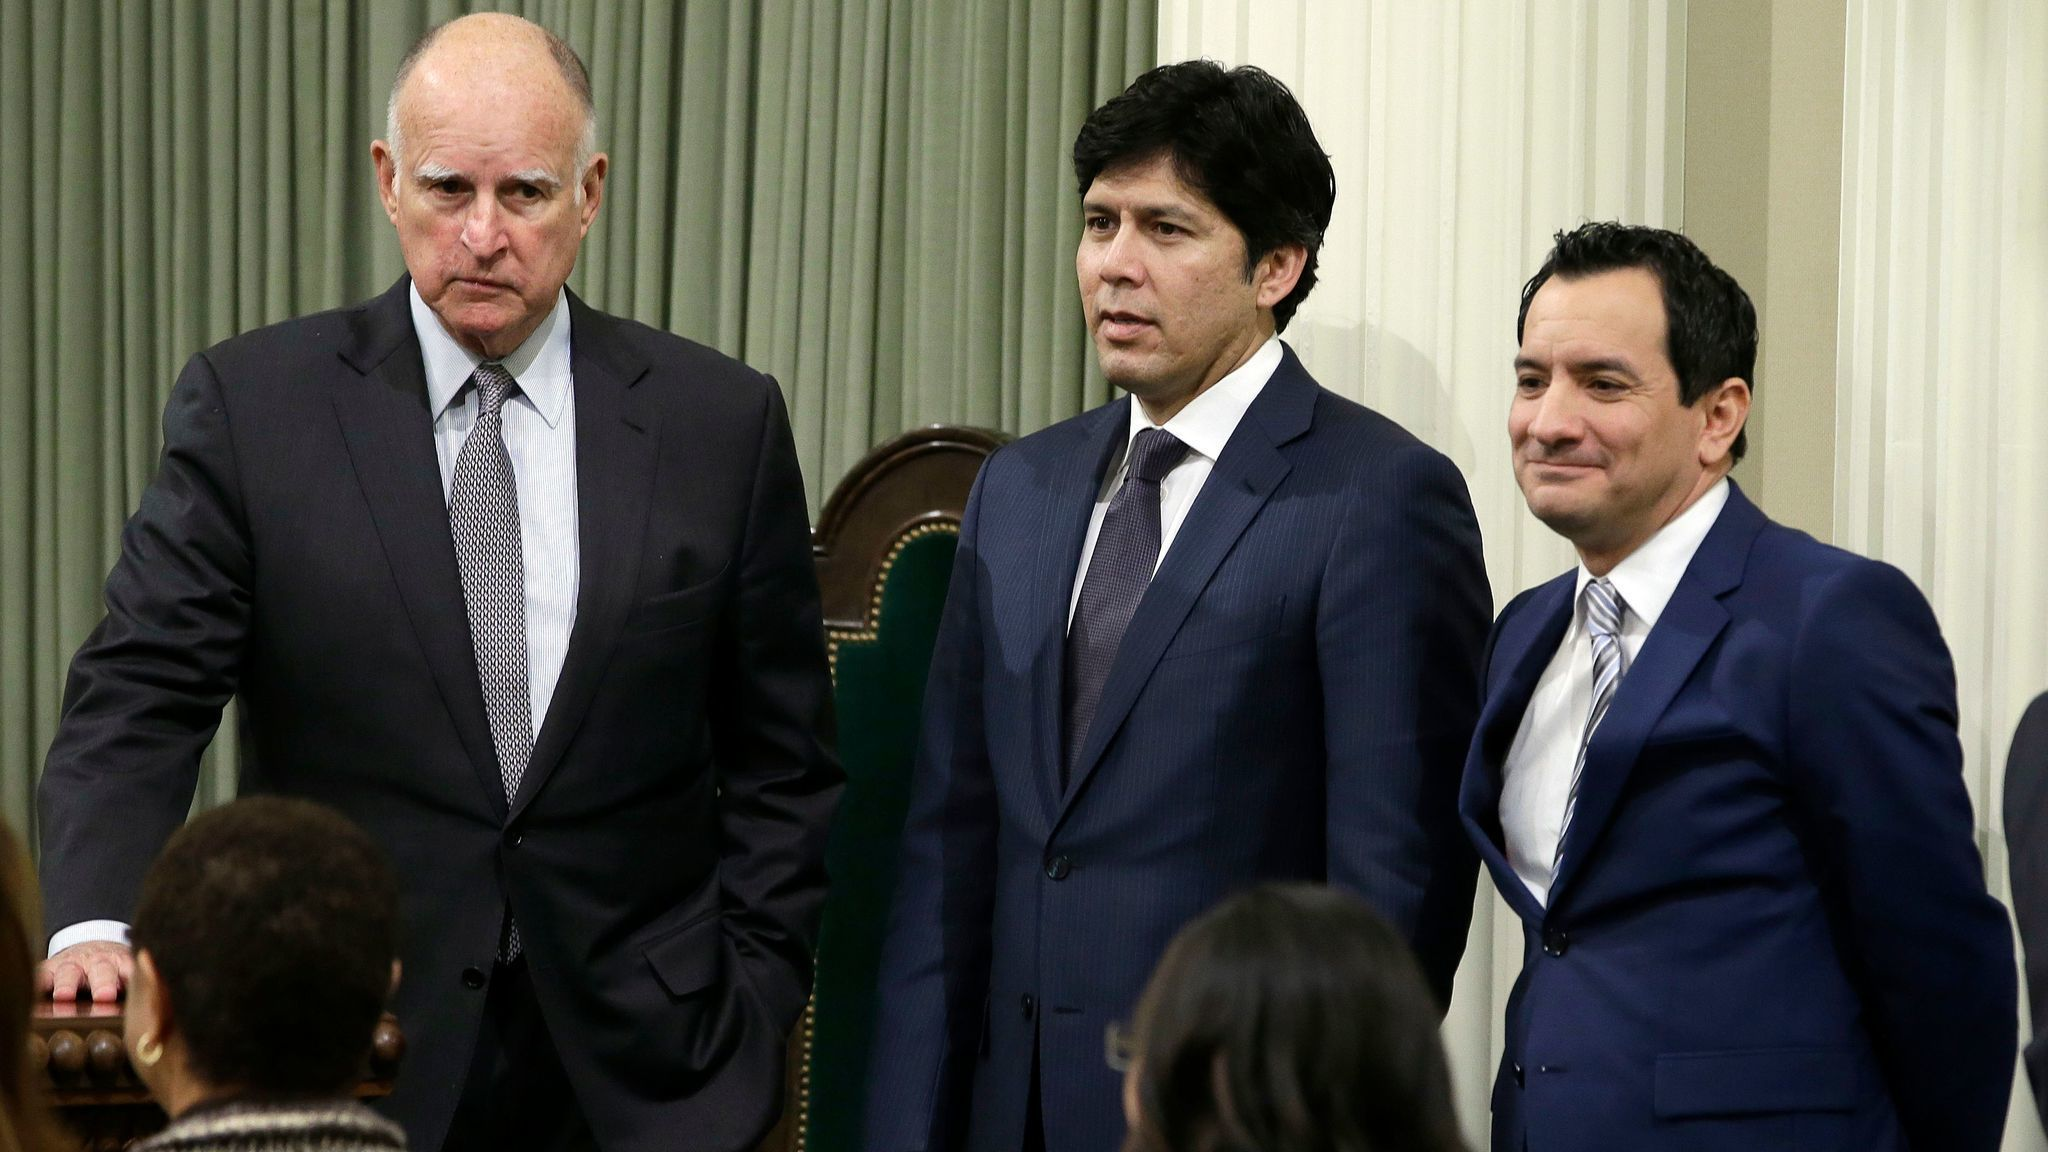 California Gov. Jerry Brown, from left, Senate President Pro Tem Kevin de León (D-Los Angeles) and Assembly Speaker Anthony Rendón (D-Paramount) at the Capitol in Sacramento in March. (Rich Pedroncelli / Associated Press)